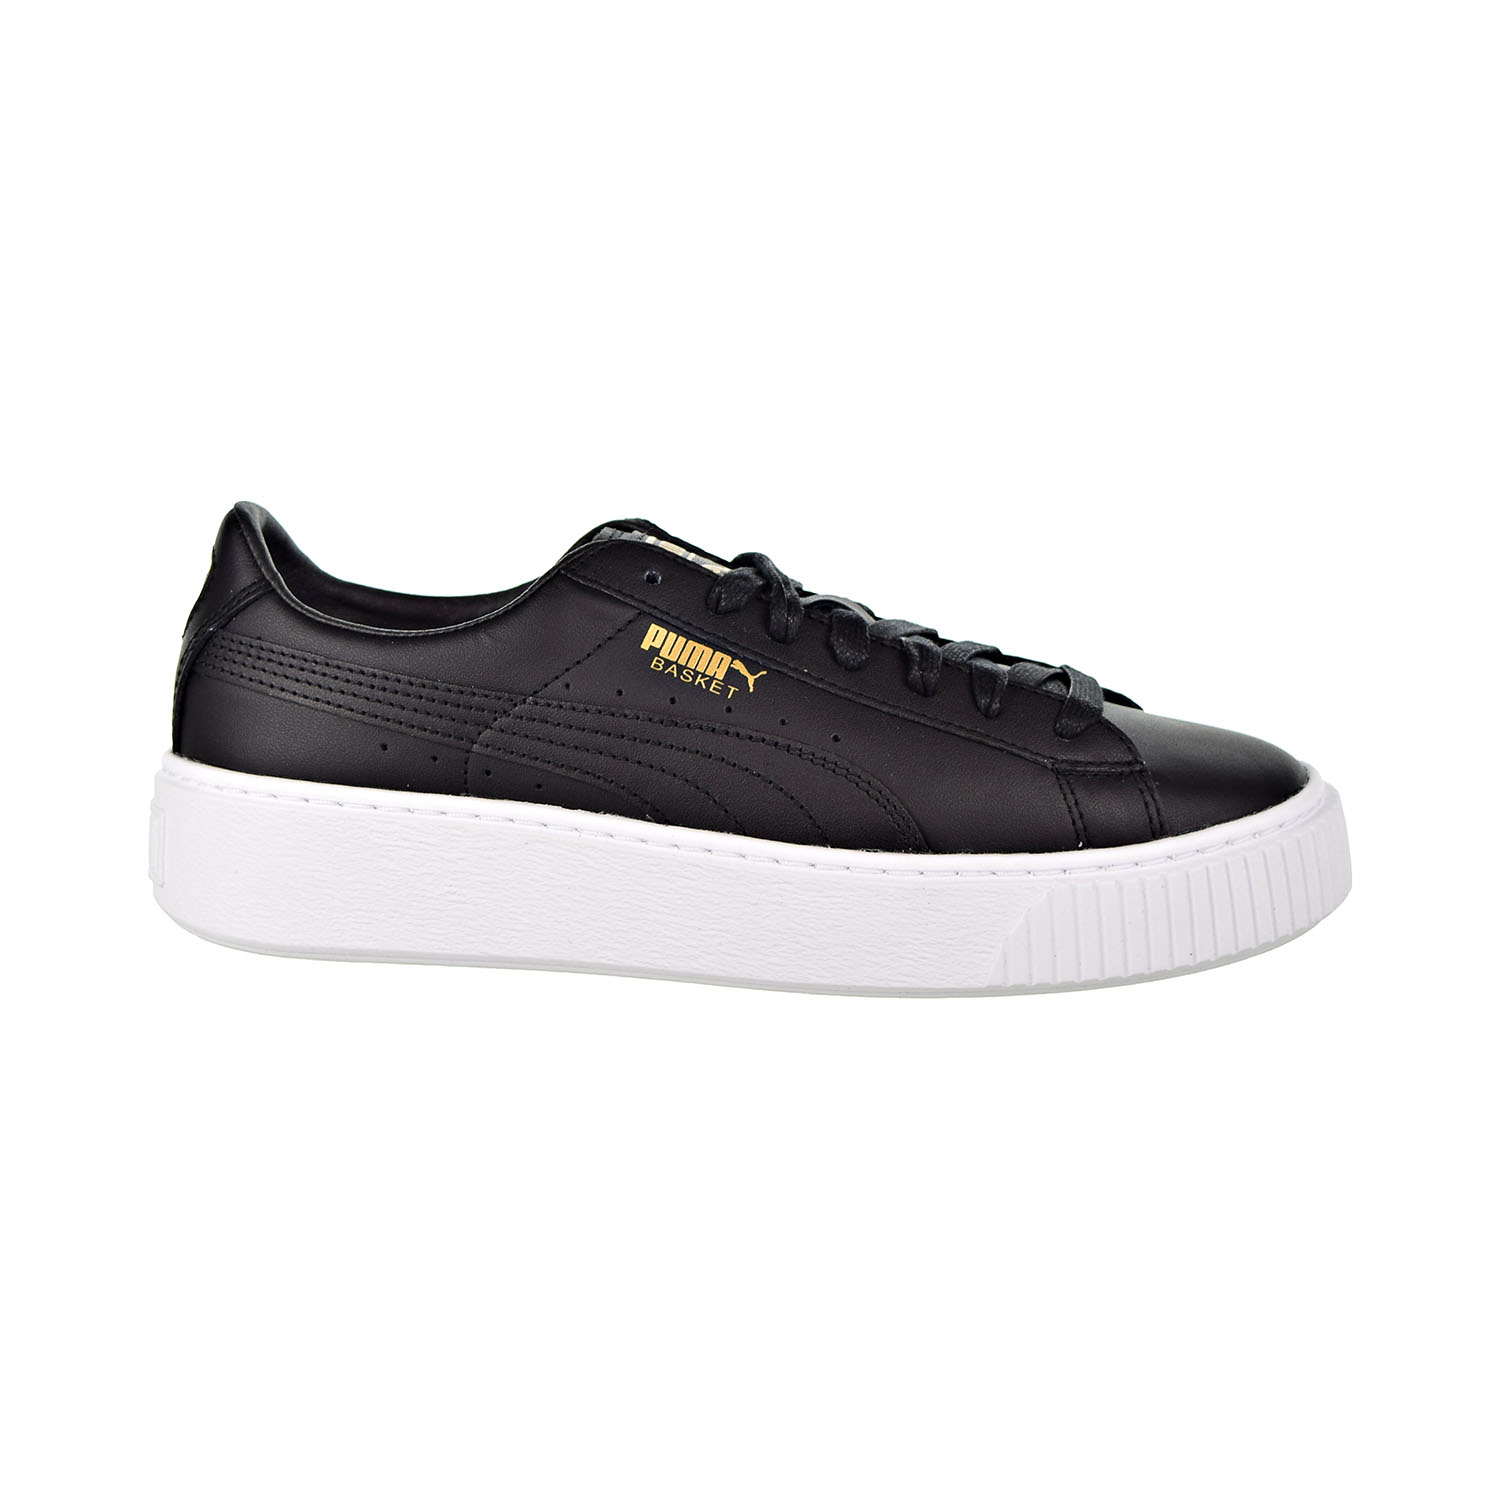 544df42a374 Details about Puma Basket Platform Core Women s Shoes Puma Black Gold  364040-03